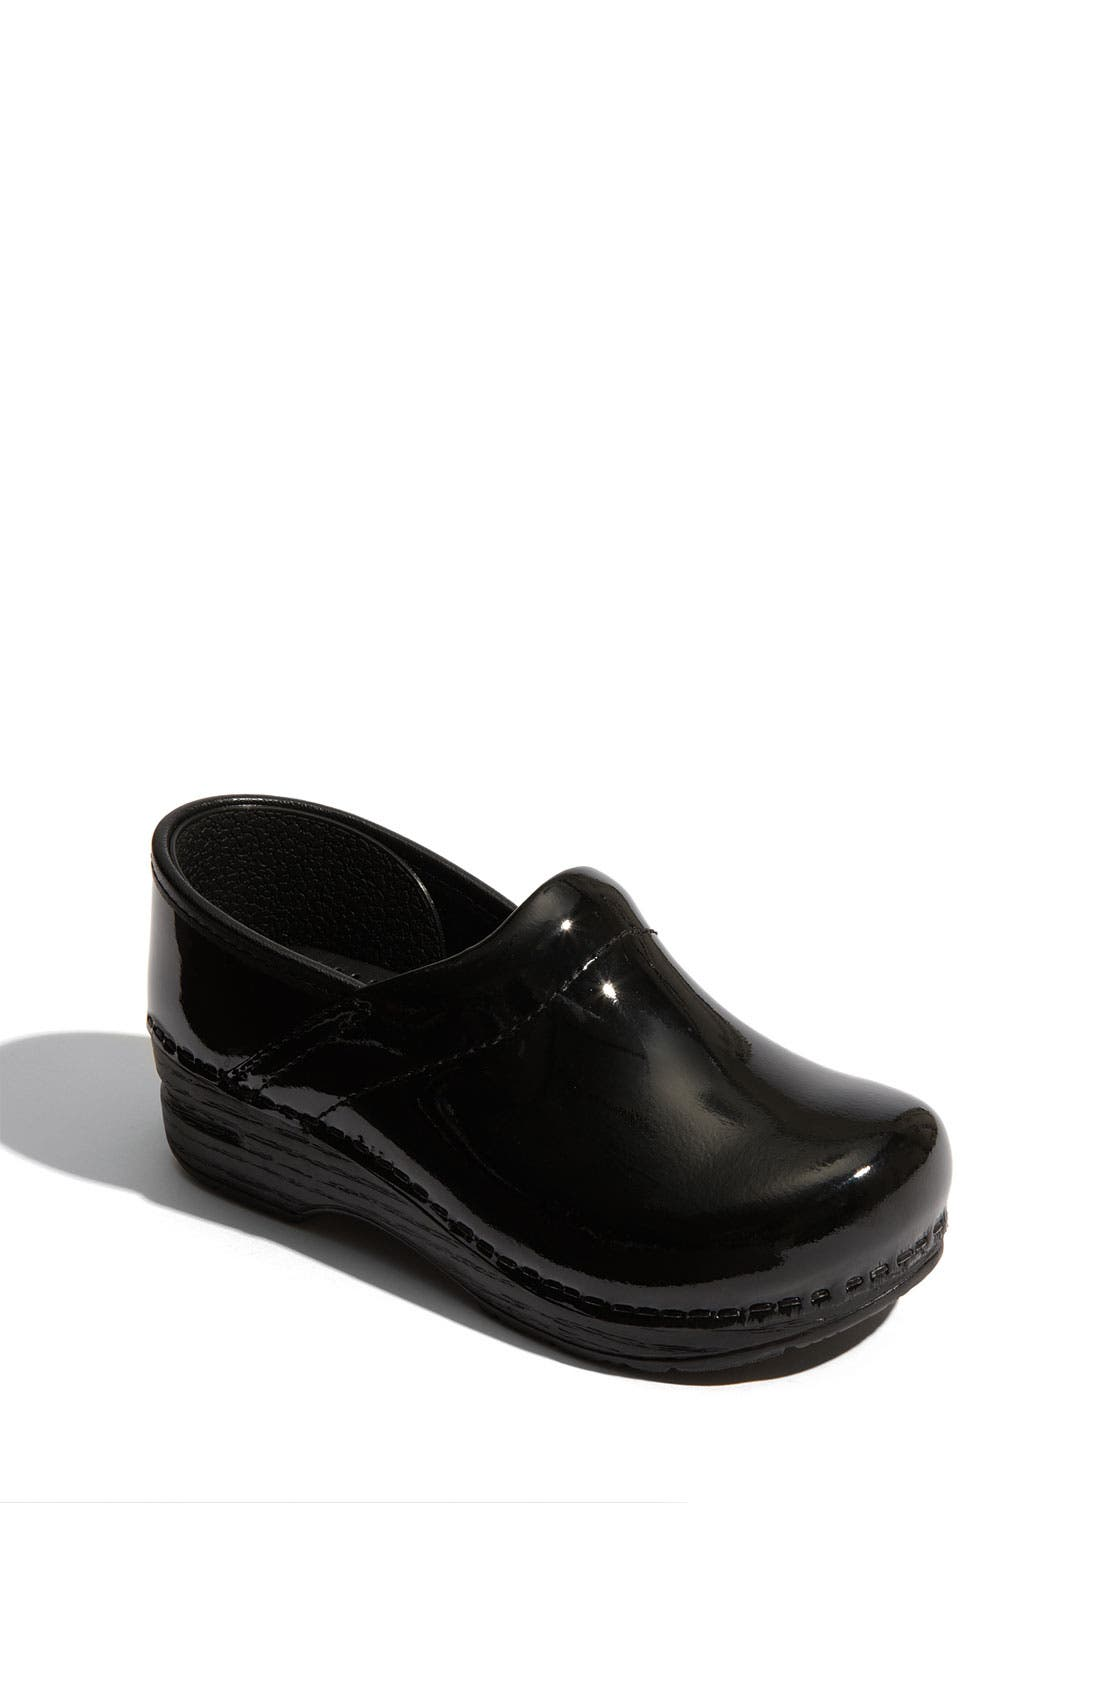 Alternate Image 1 Selected - Dansko 'Gitte' Clog (Toddler, Little Kid & Big Kid)